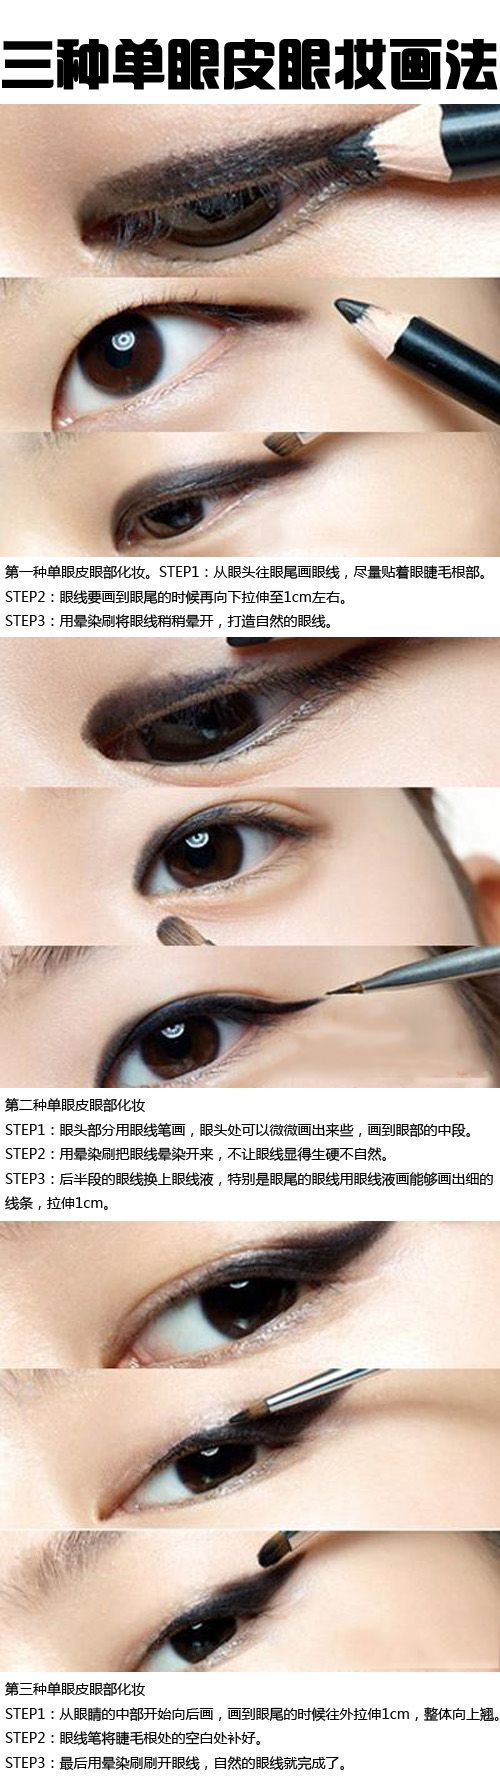 3 Different Ways To To Apply Eyeliner For Single Eyelid  ĸ�种单眼皮眼妆 · Korean  Makeupasian